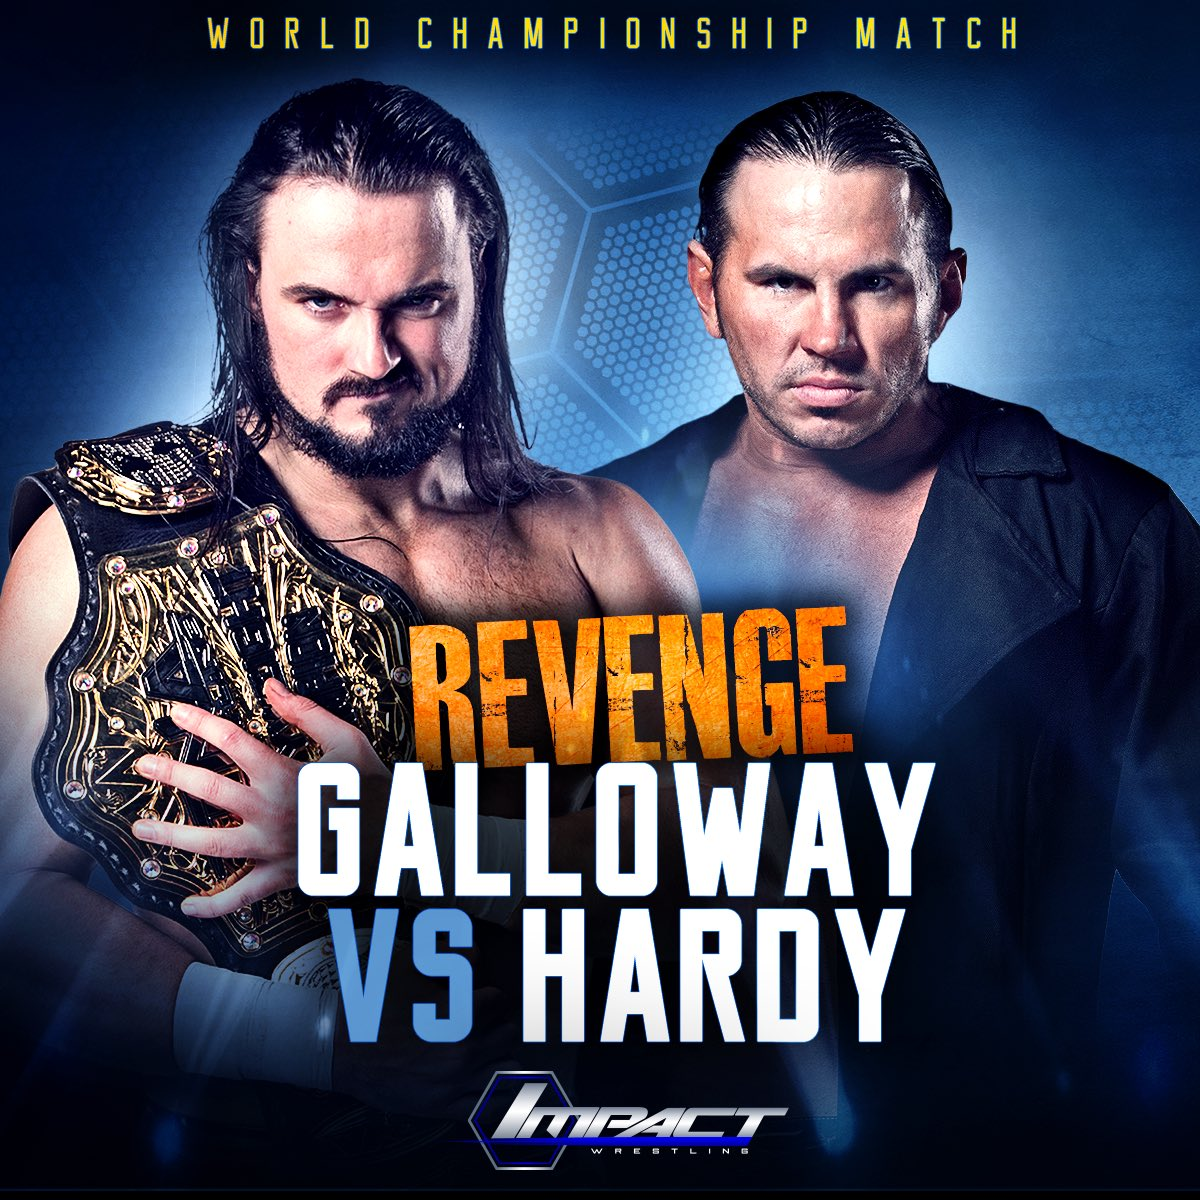 Don't miss TNA tonight at 9pm on Challenge. @MATTHARDYBRAND gets his World Title rematch against @GallowaySpeaks. https://t.co/2Fi3VcbUMg